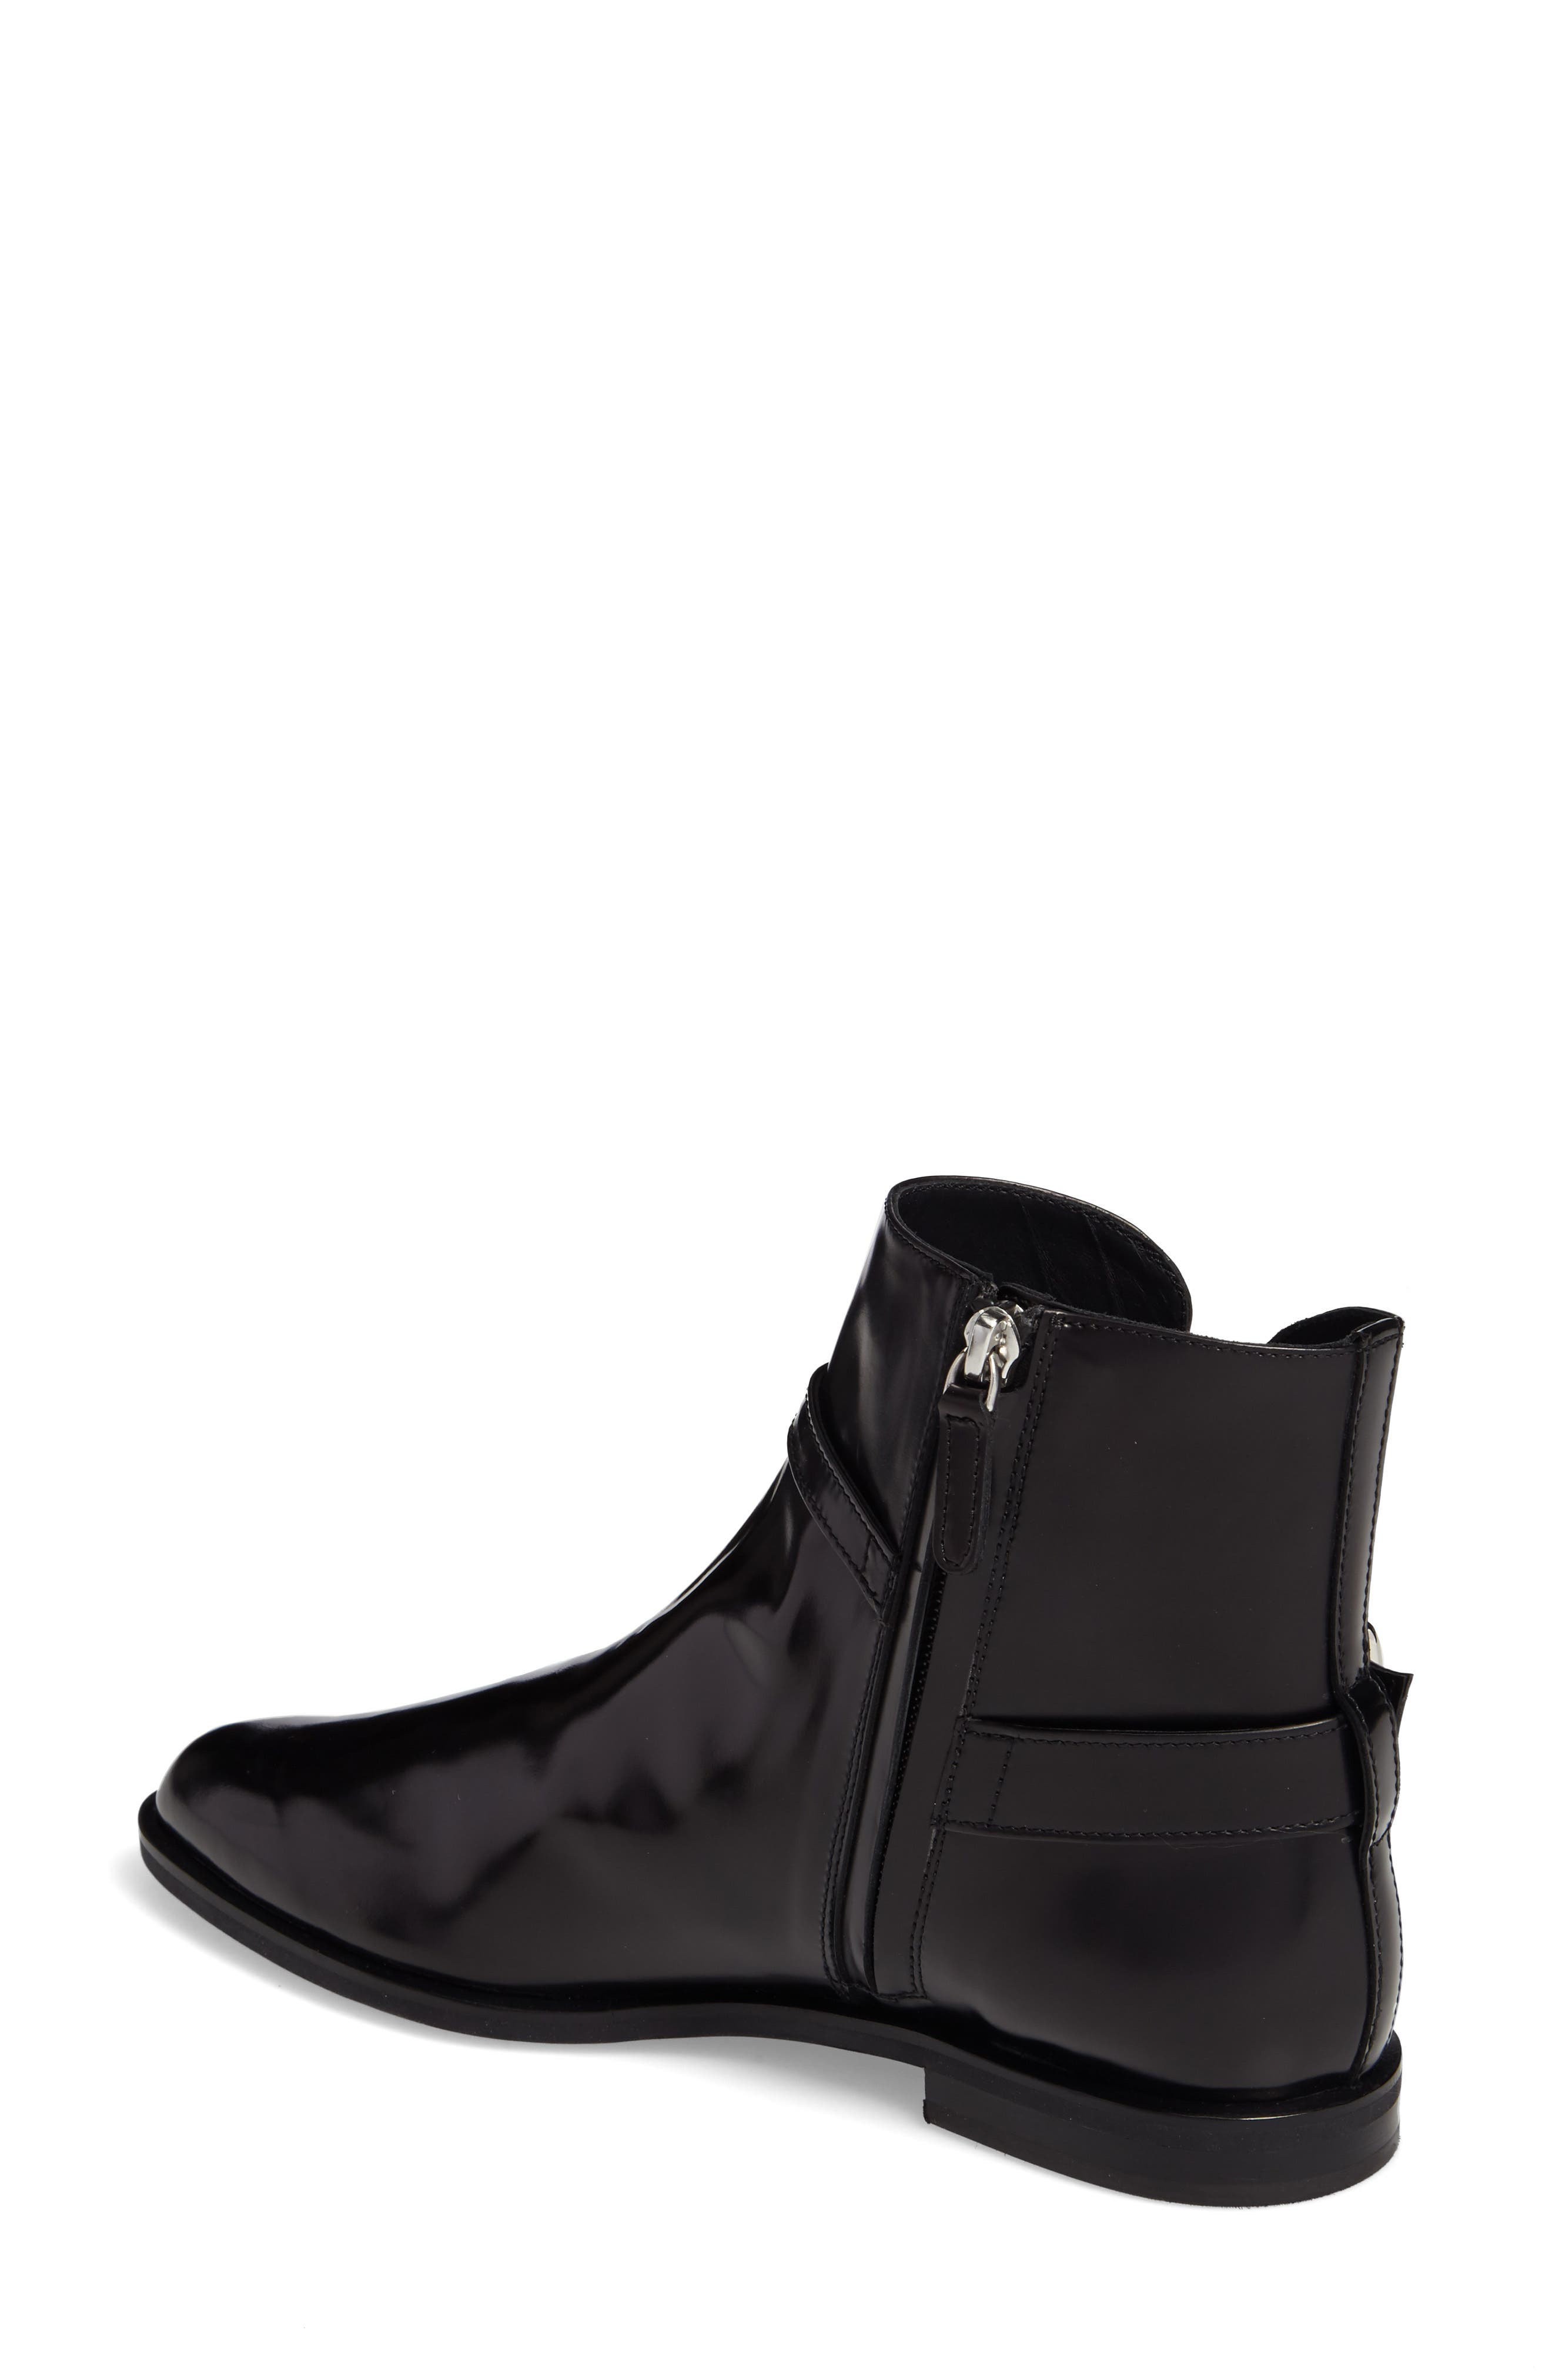 Pointy Toe Bootie,                             Alternate thumbnail 2, color,                             Black